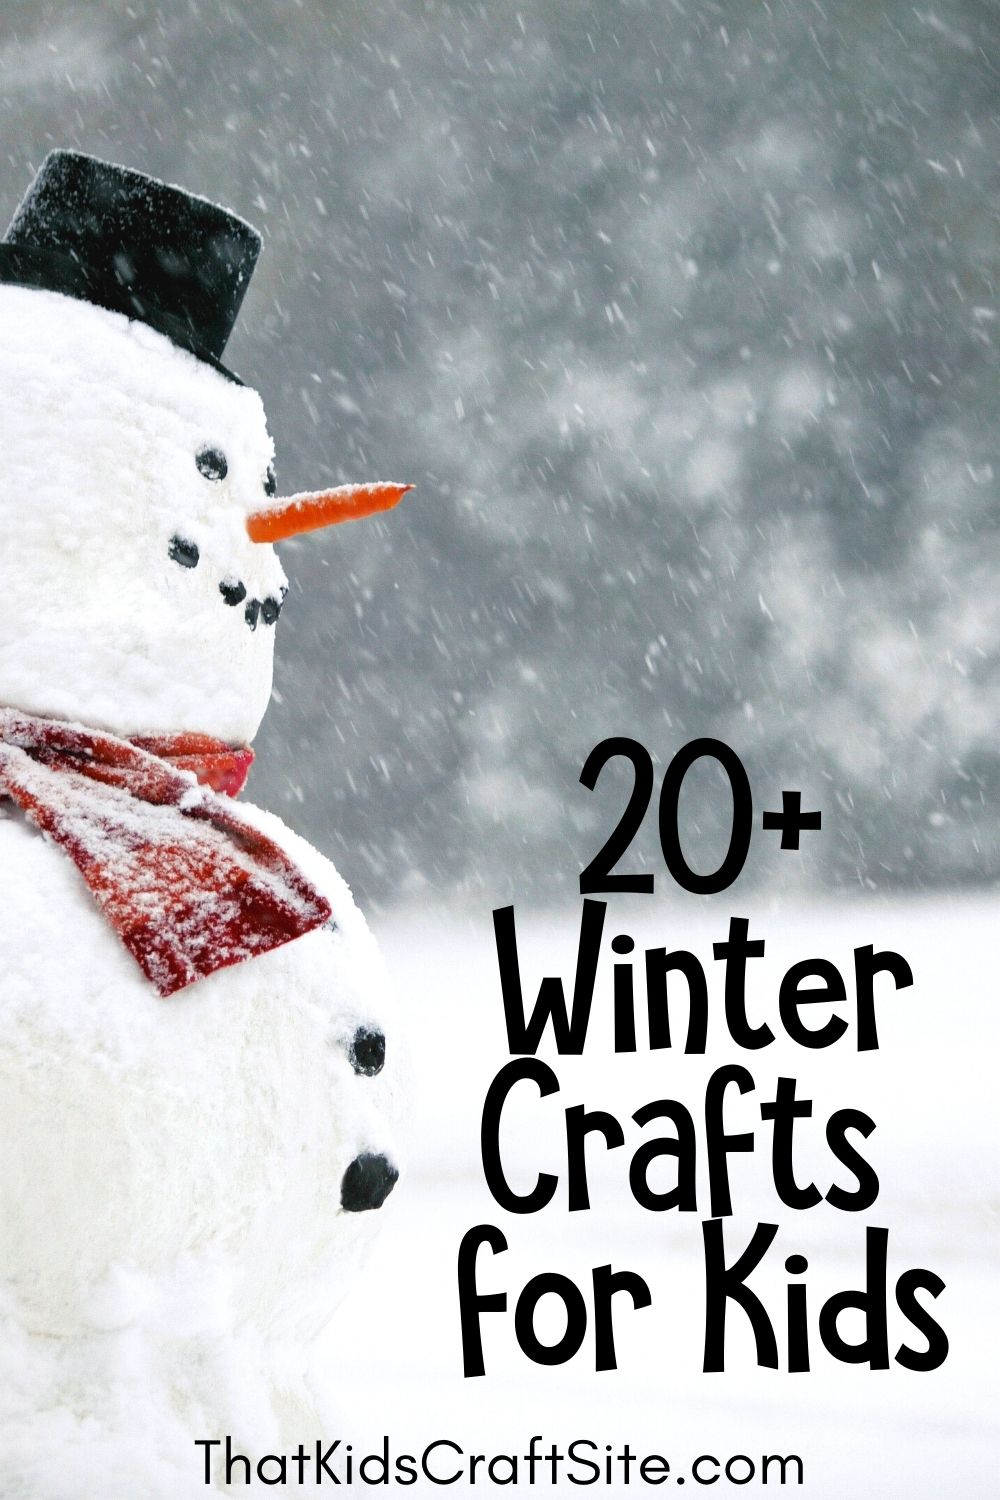 20+ Winter Crafts for Kids